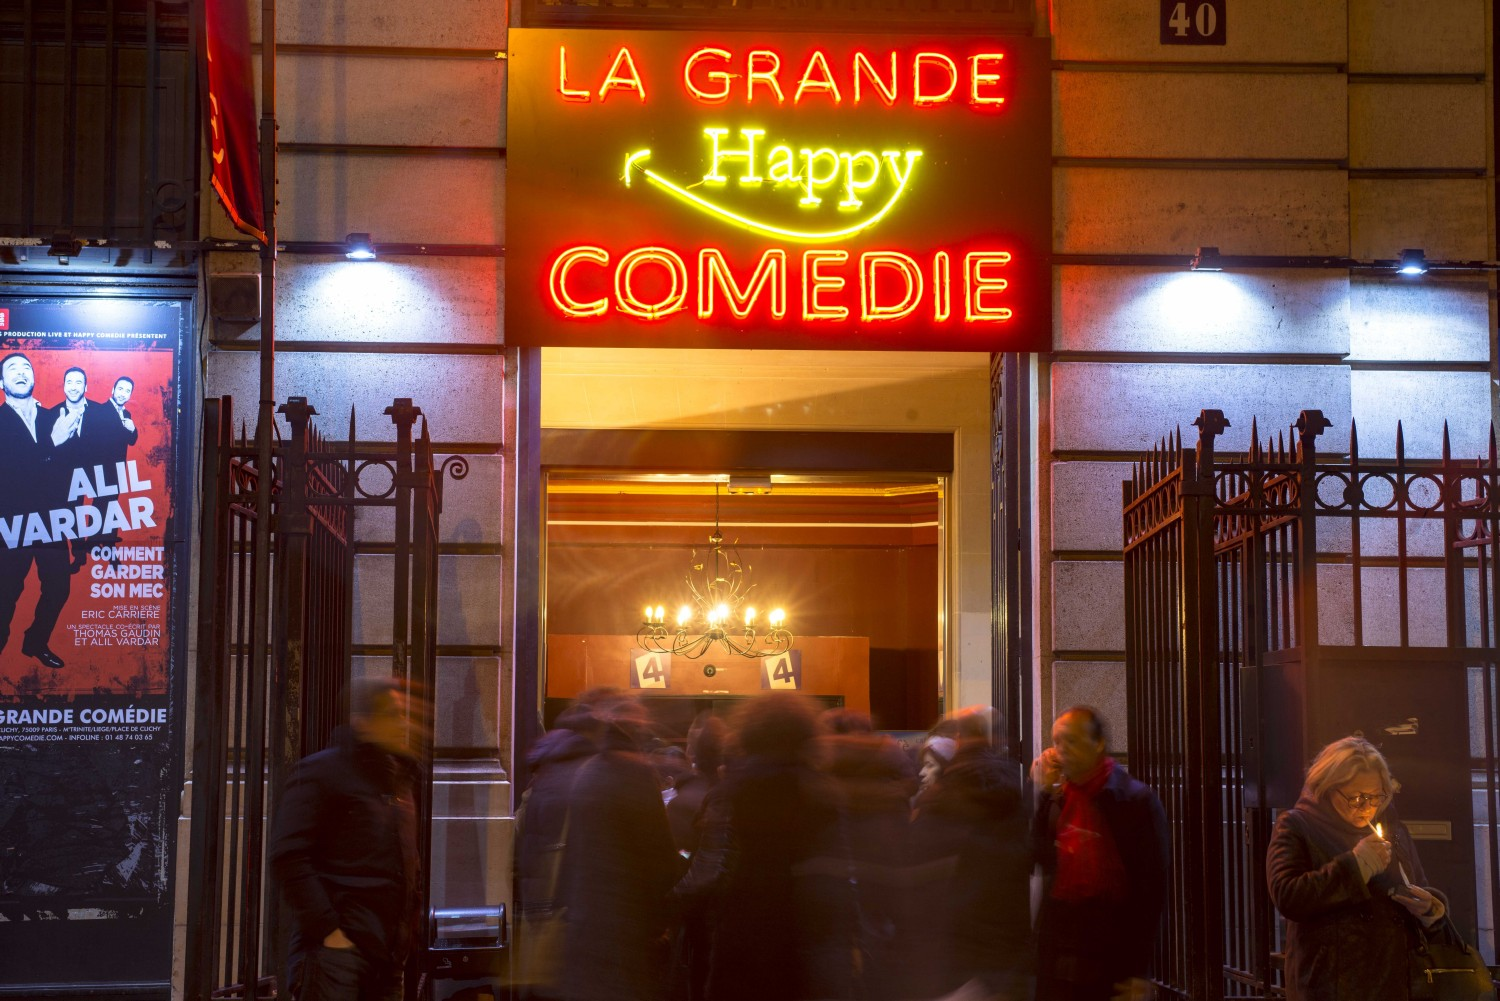 La Grande Happy Comédie